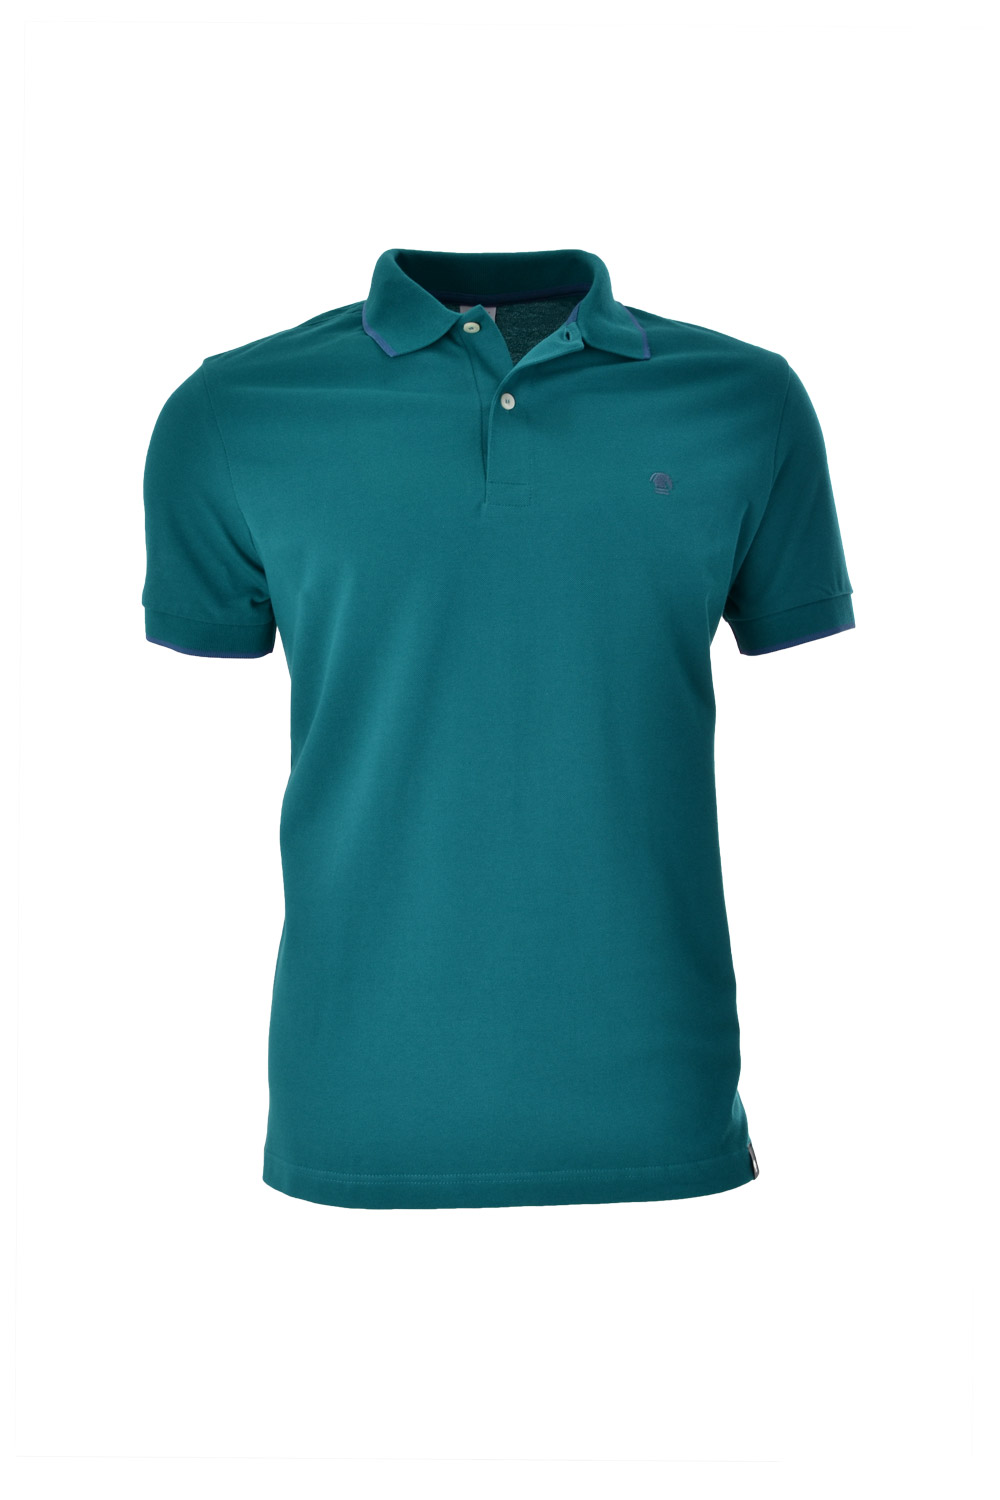 POLO MC CASUAL SLIM ALGODAO & ELASTANO STRETCH PIQUET VERDE MEDIO